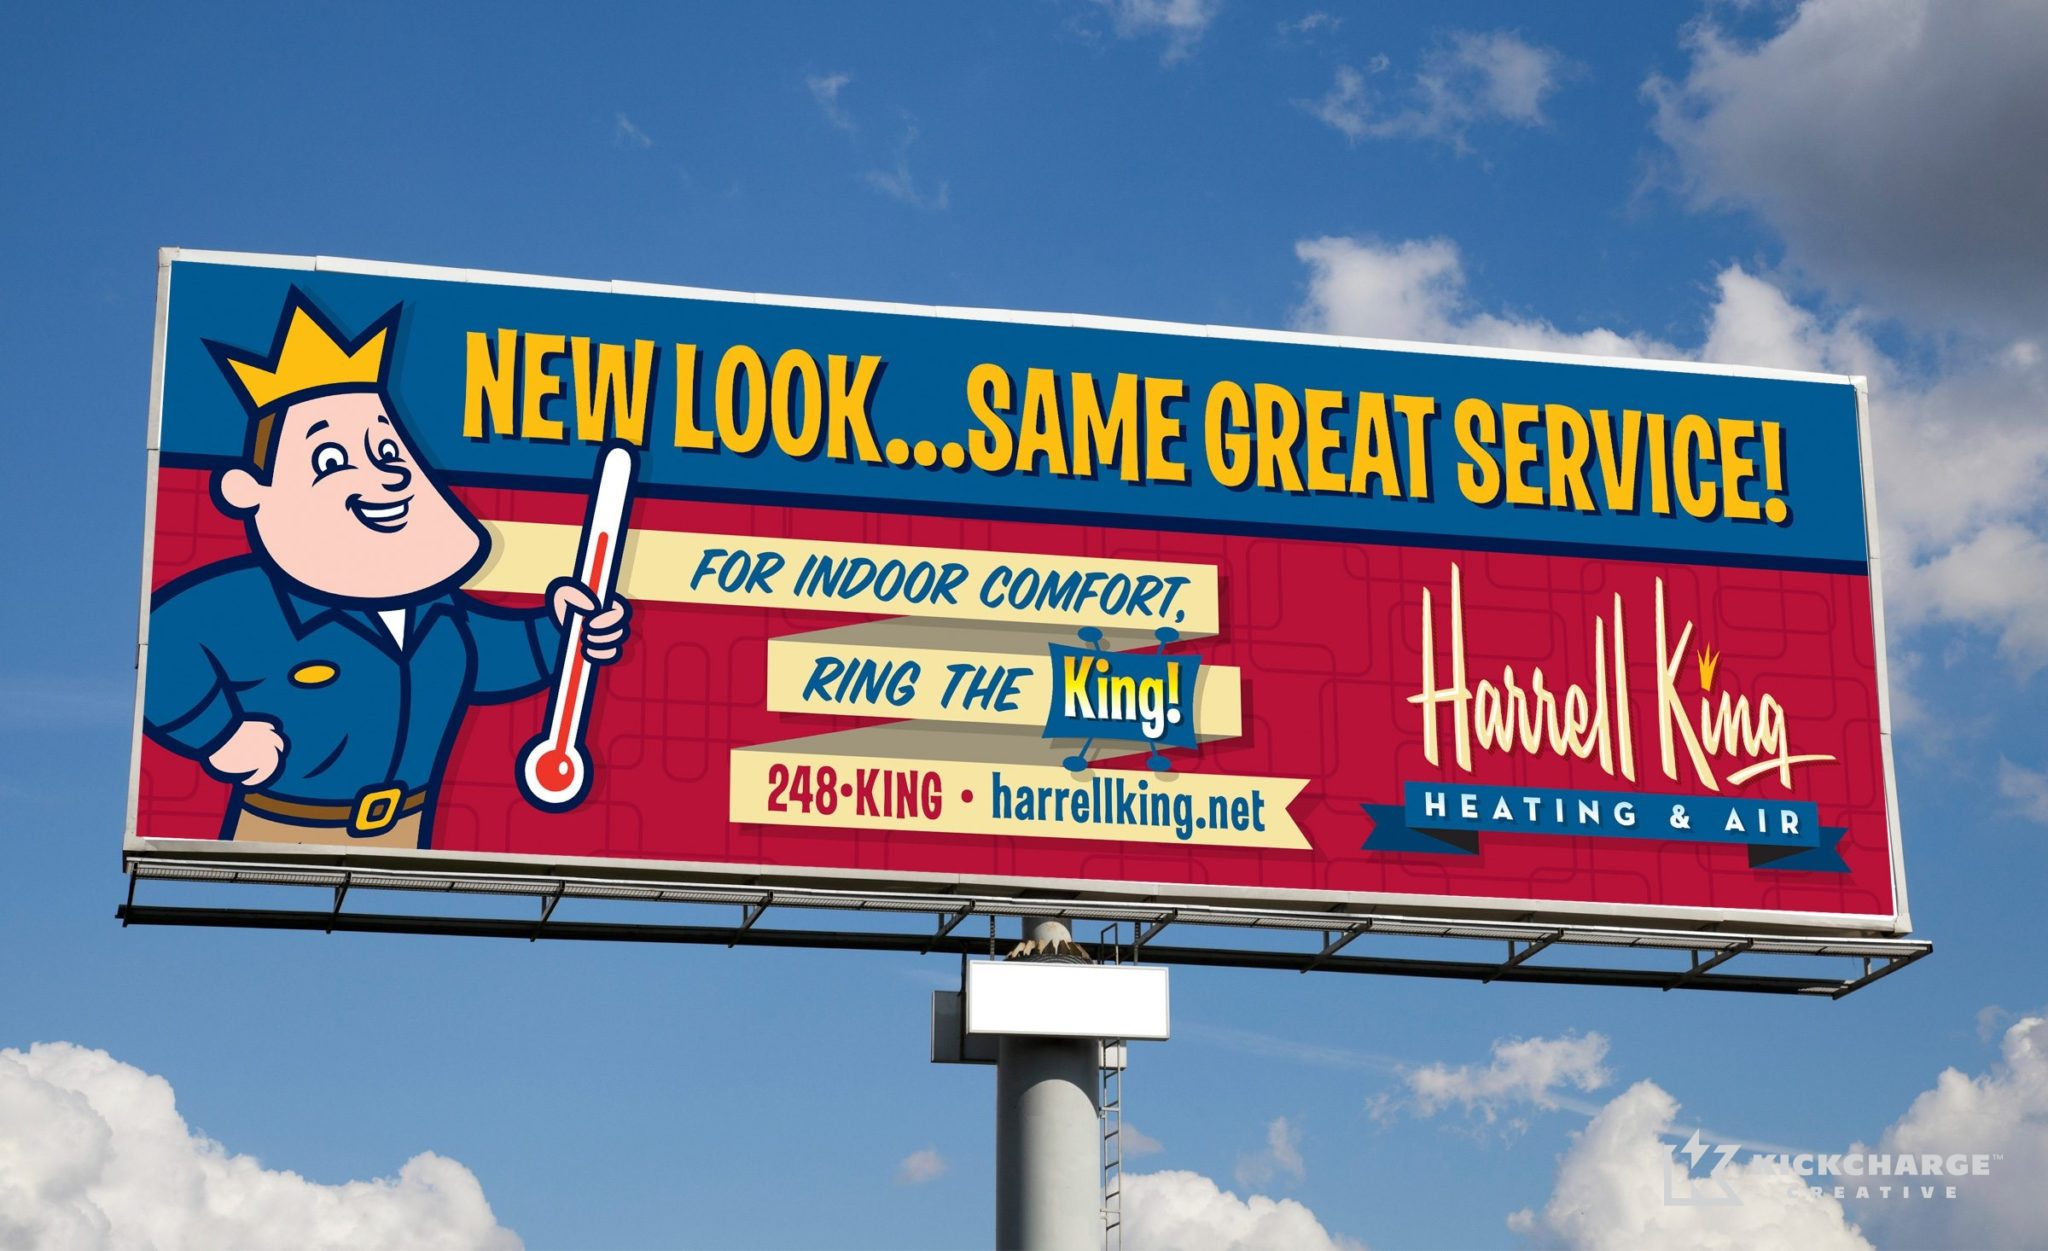 Billboard design for Harrell King Heating & Air.